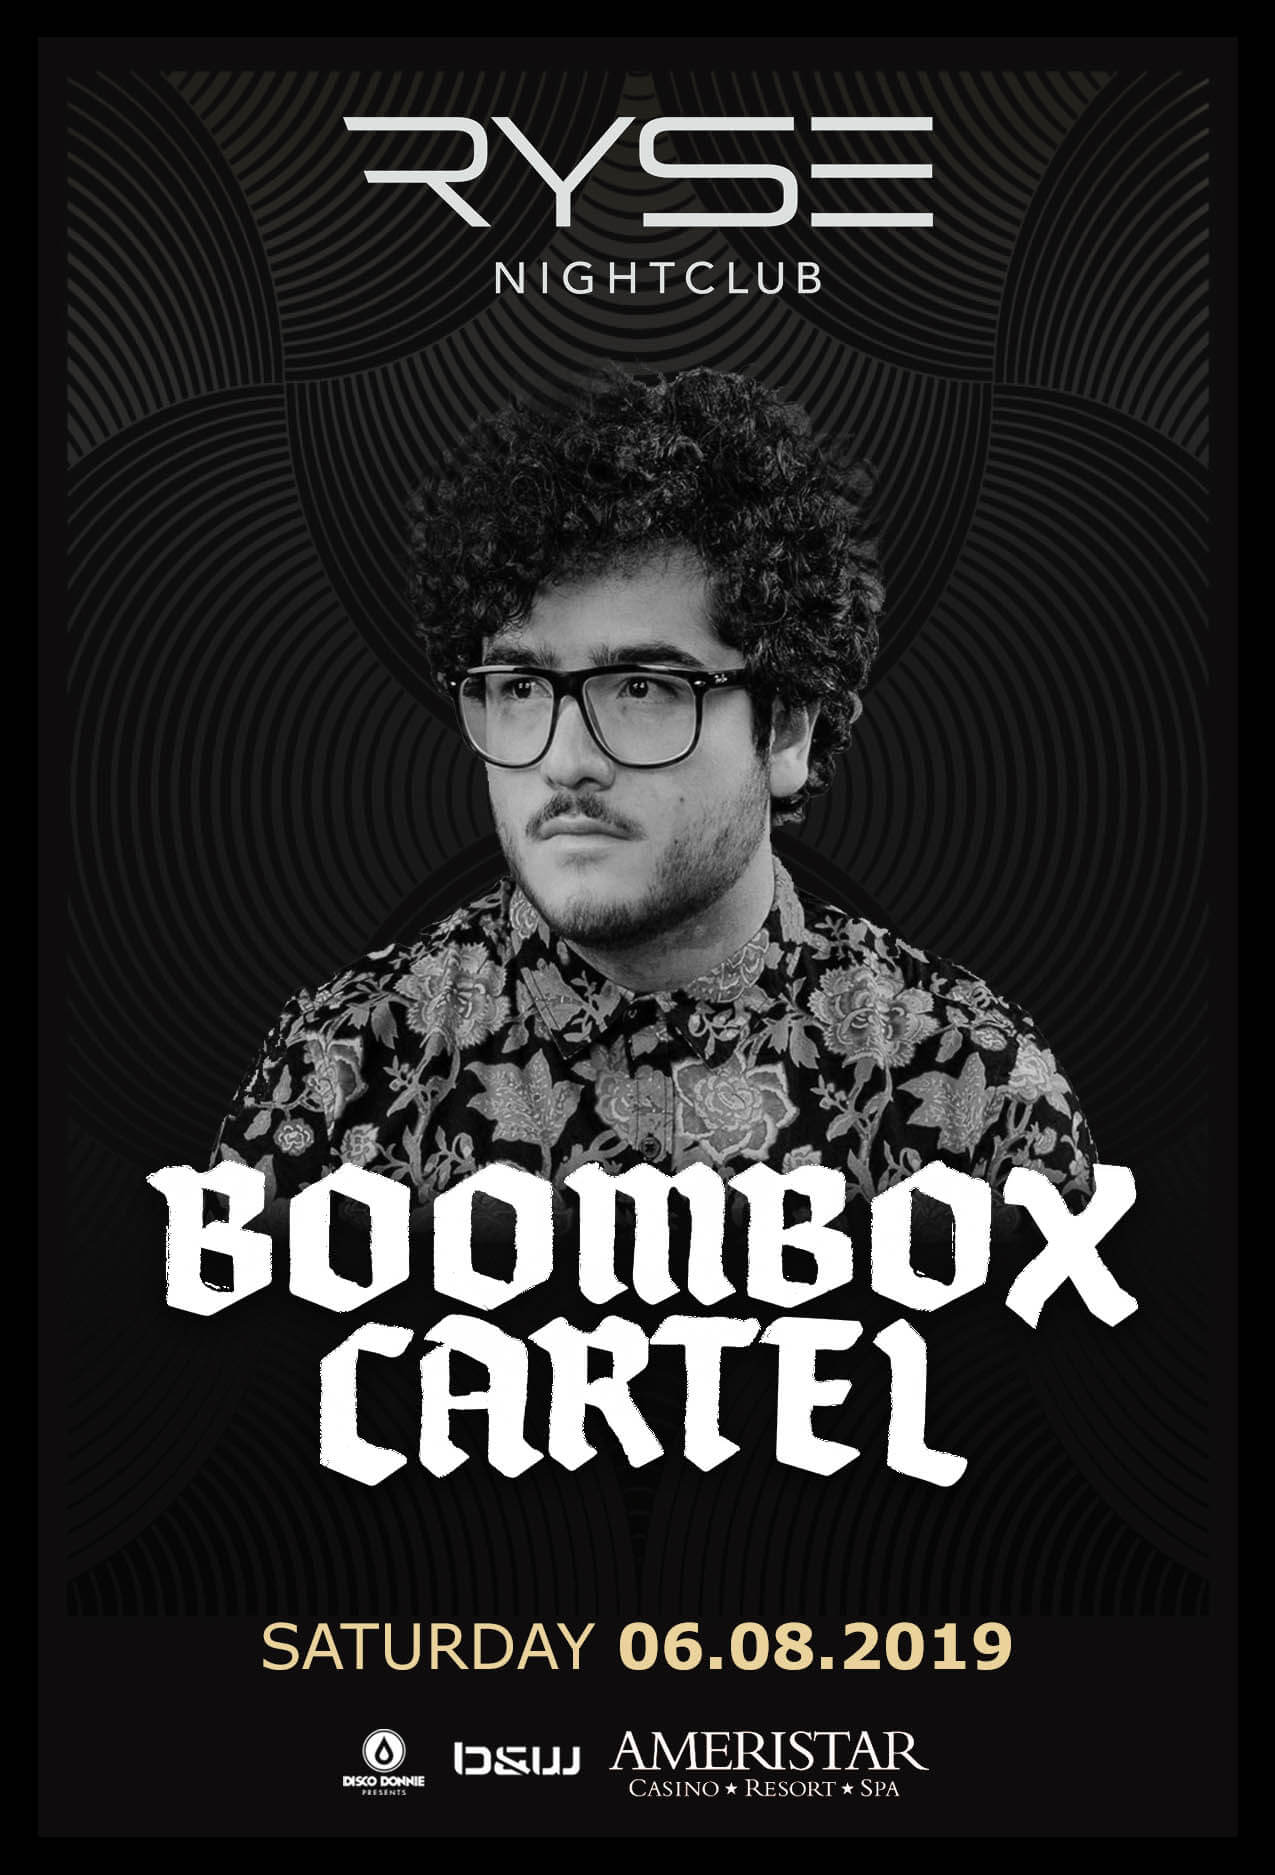 Boombox Cartel in St Charles